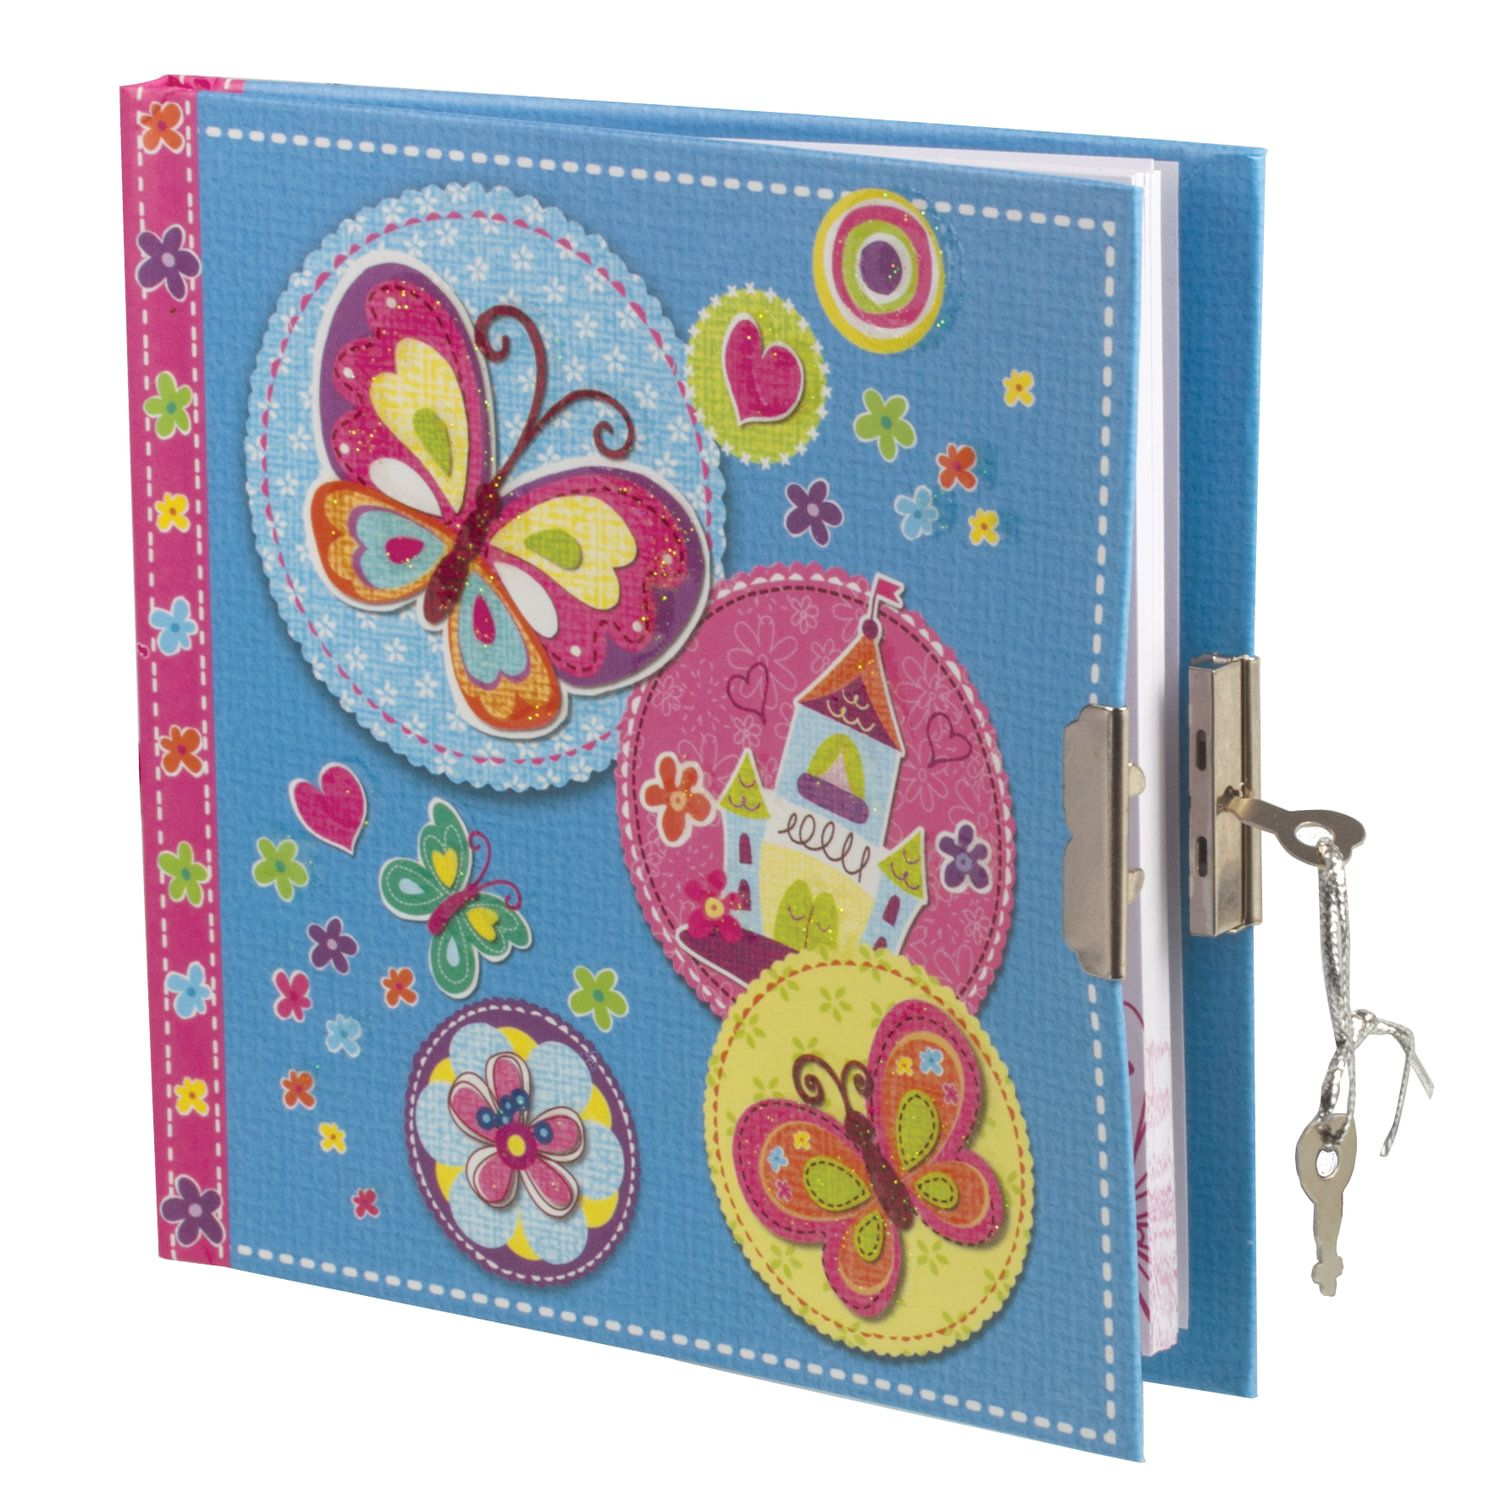 """BRAUBERG / Notebook """"Butterfly"""" SMALL FORMAT 60 sheets A6, 135x135 mm, hardcover, metal lock, sequins, line"""